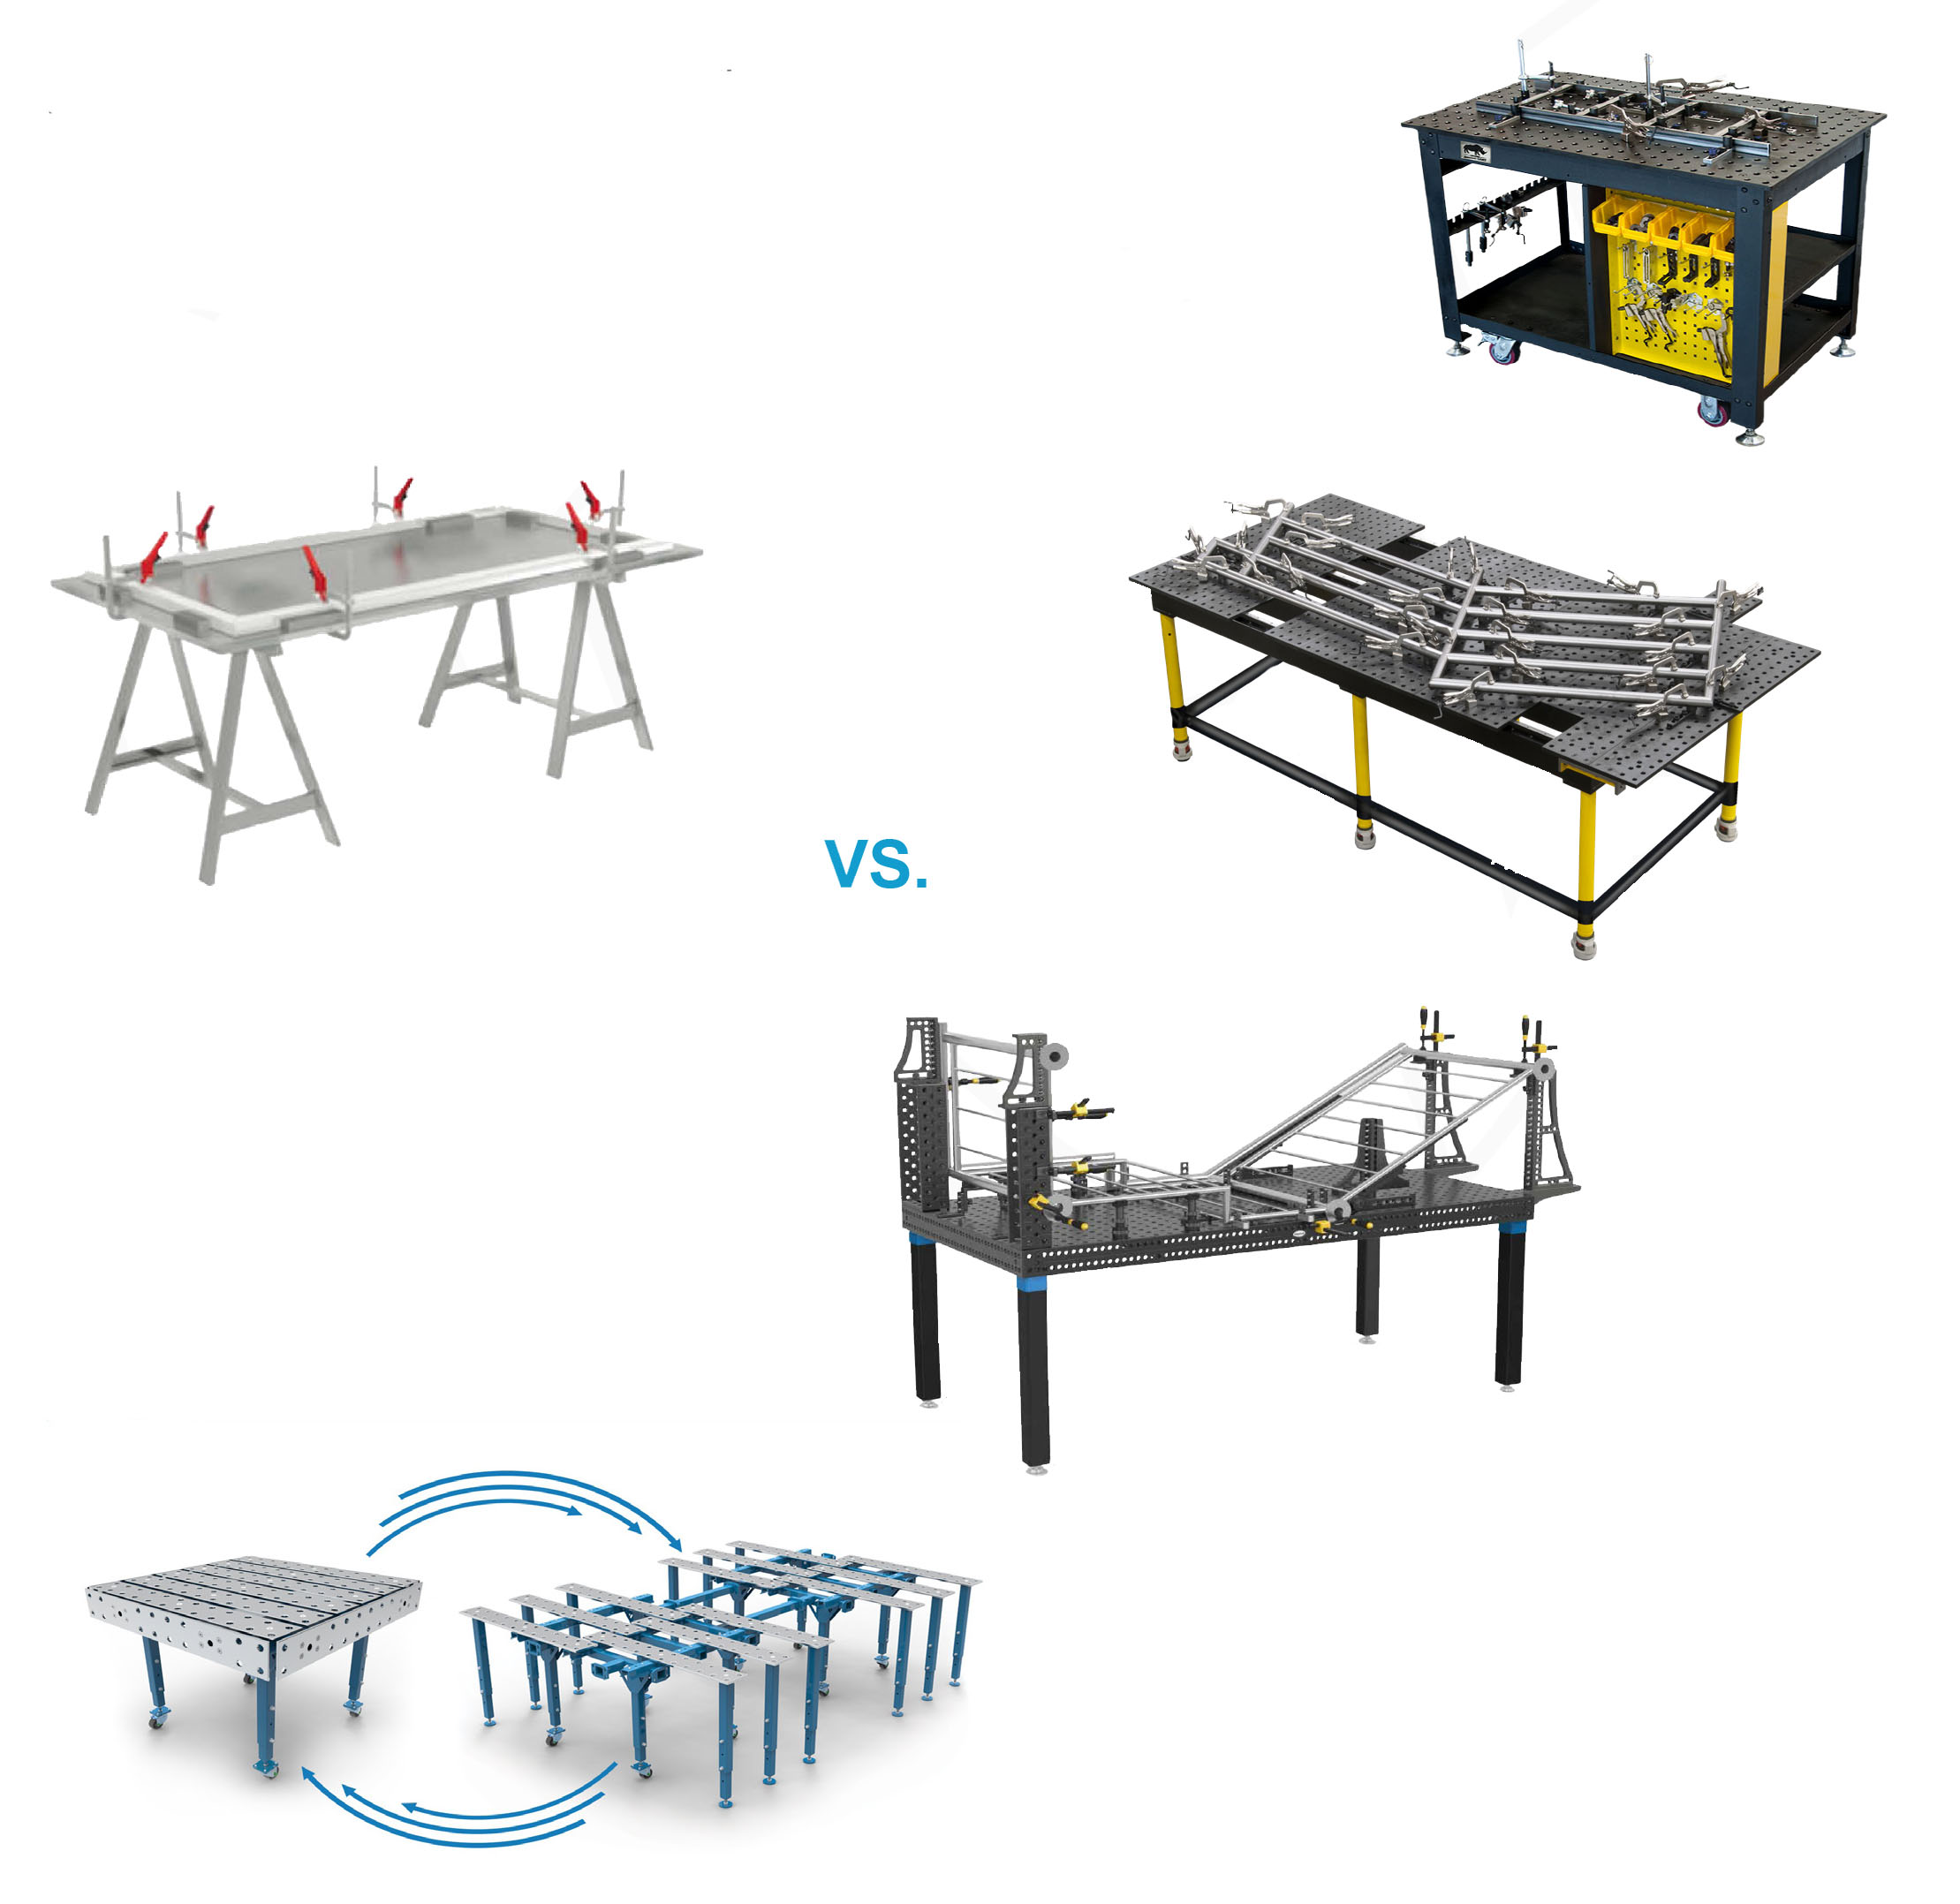 table trétau versus table de soudage